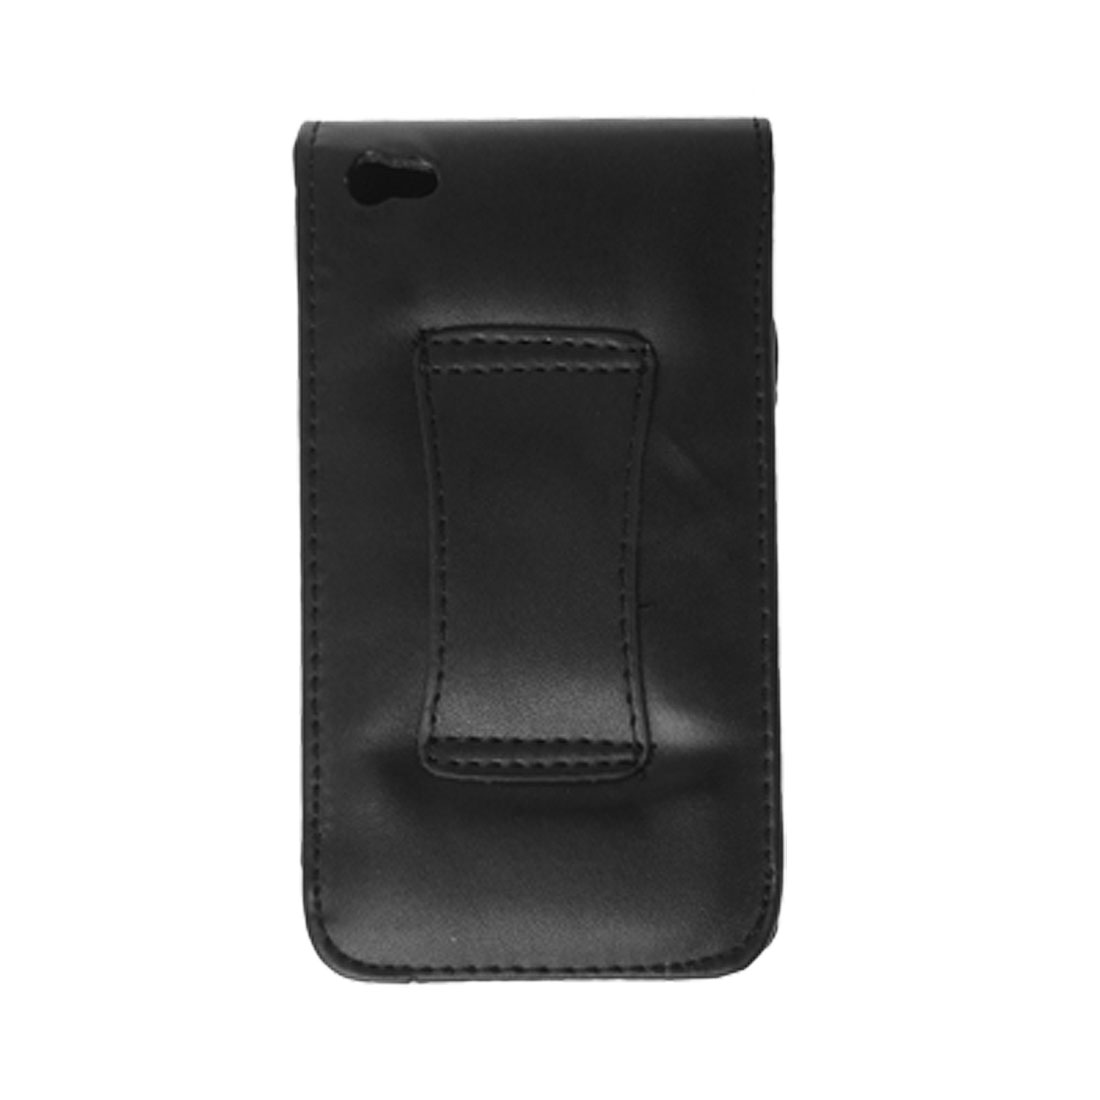 Faux Leather Magnetic Button Case for iPhone 4 4G Black